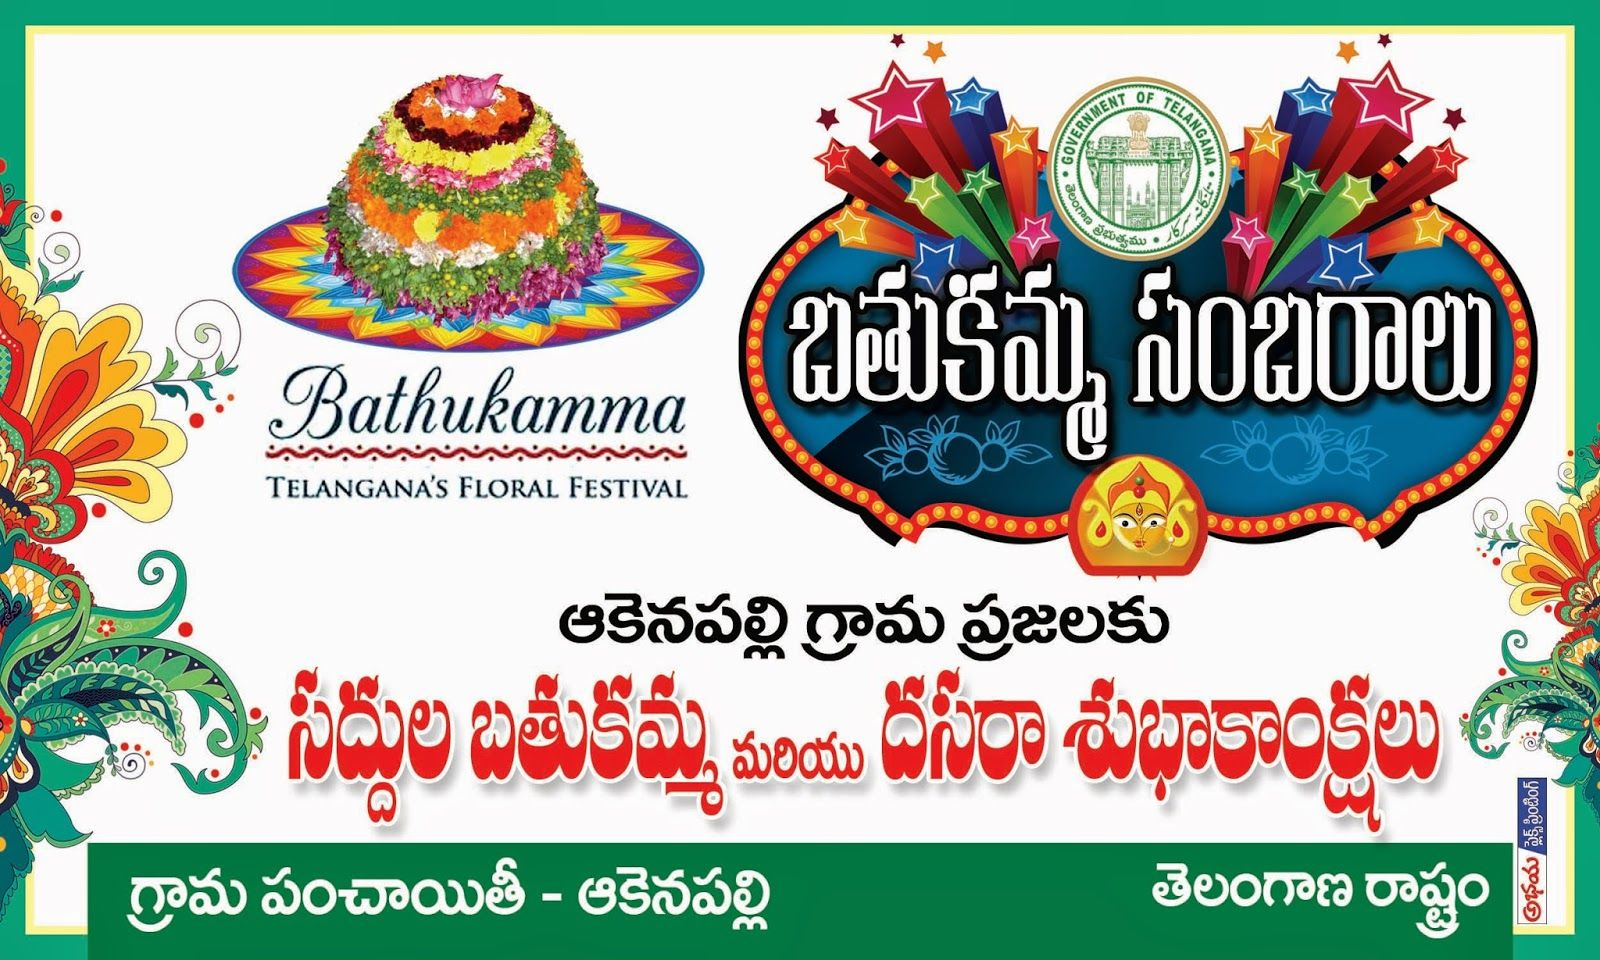 011 Essay Example On Bathukamma In Dreaded Telugu Short Language Full